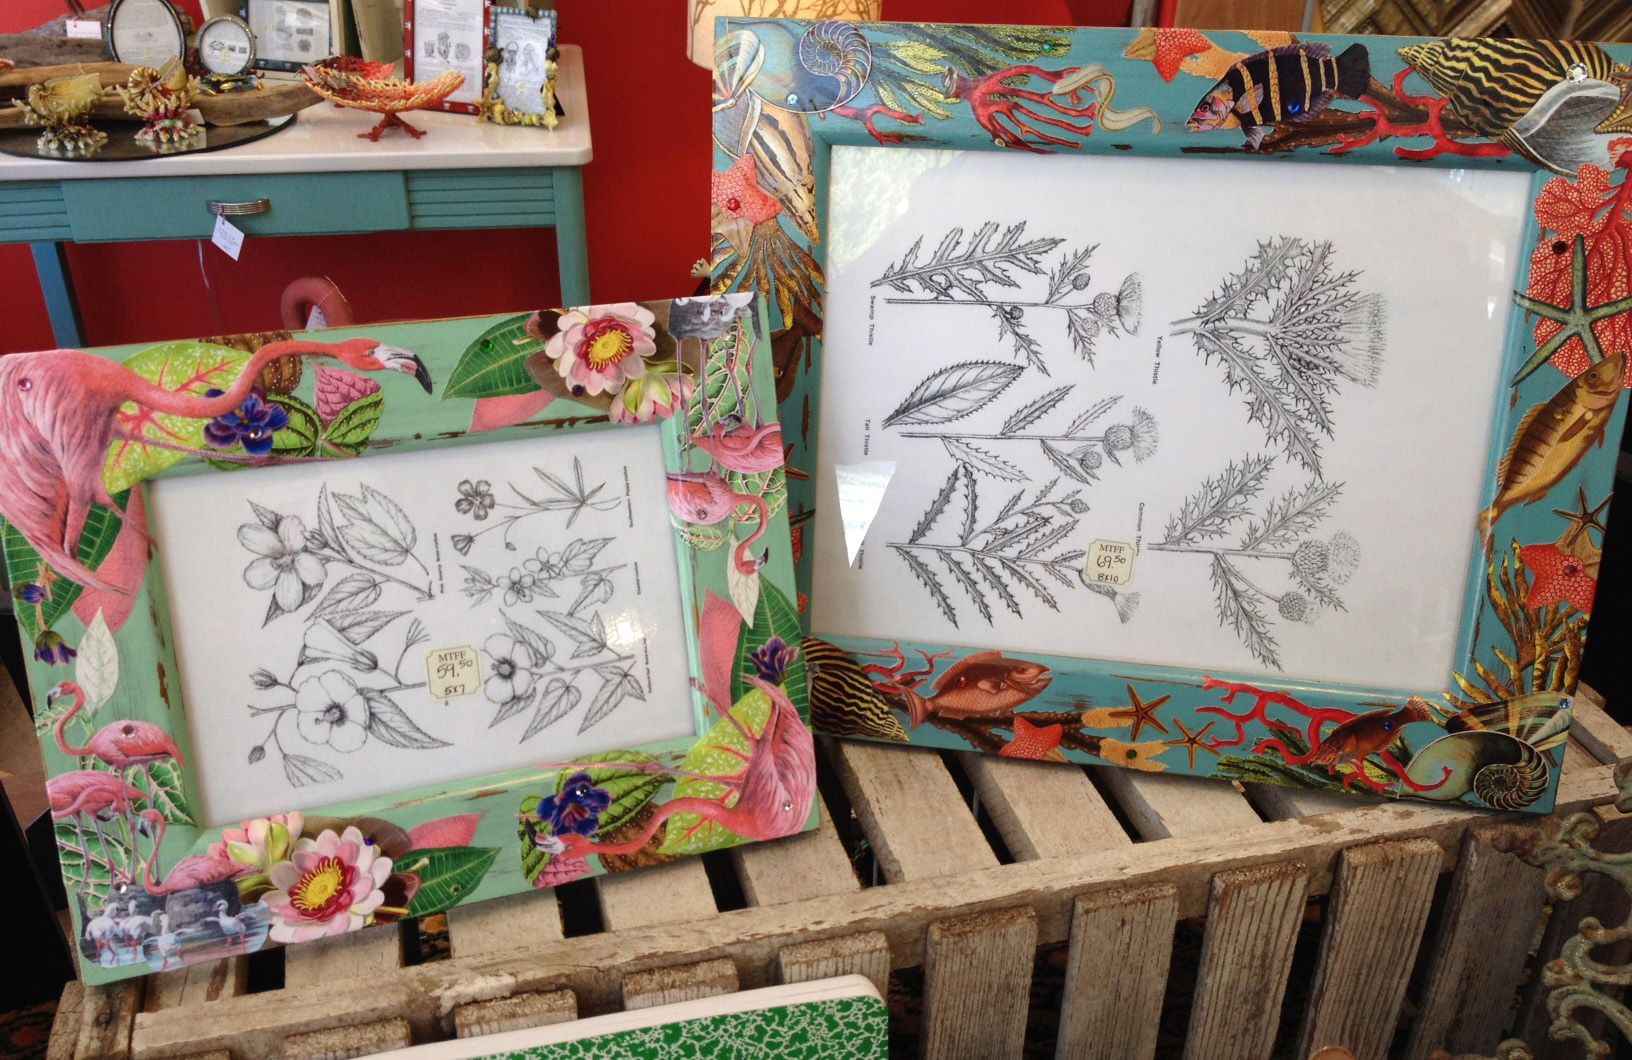 Two fabulous photo frames Flamingo Paradise 5x7 and Undersea Treasures 8x10 both made by Terri Yellalonis. Both SOLD!